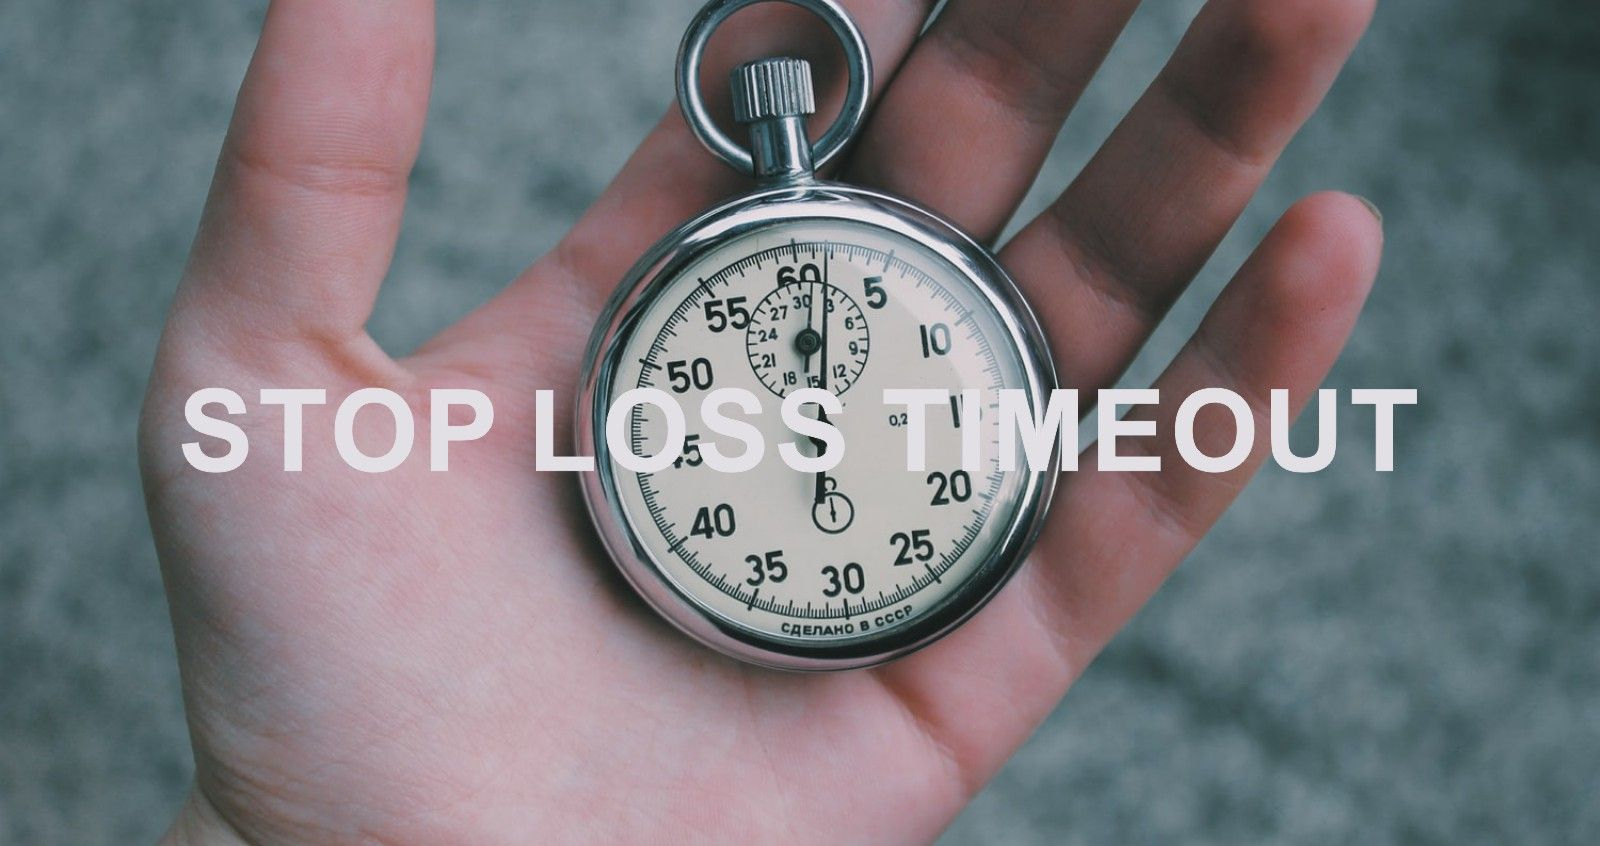 Stop Loss Timeout